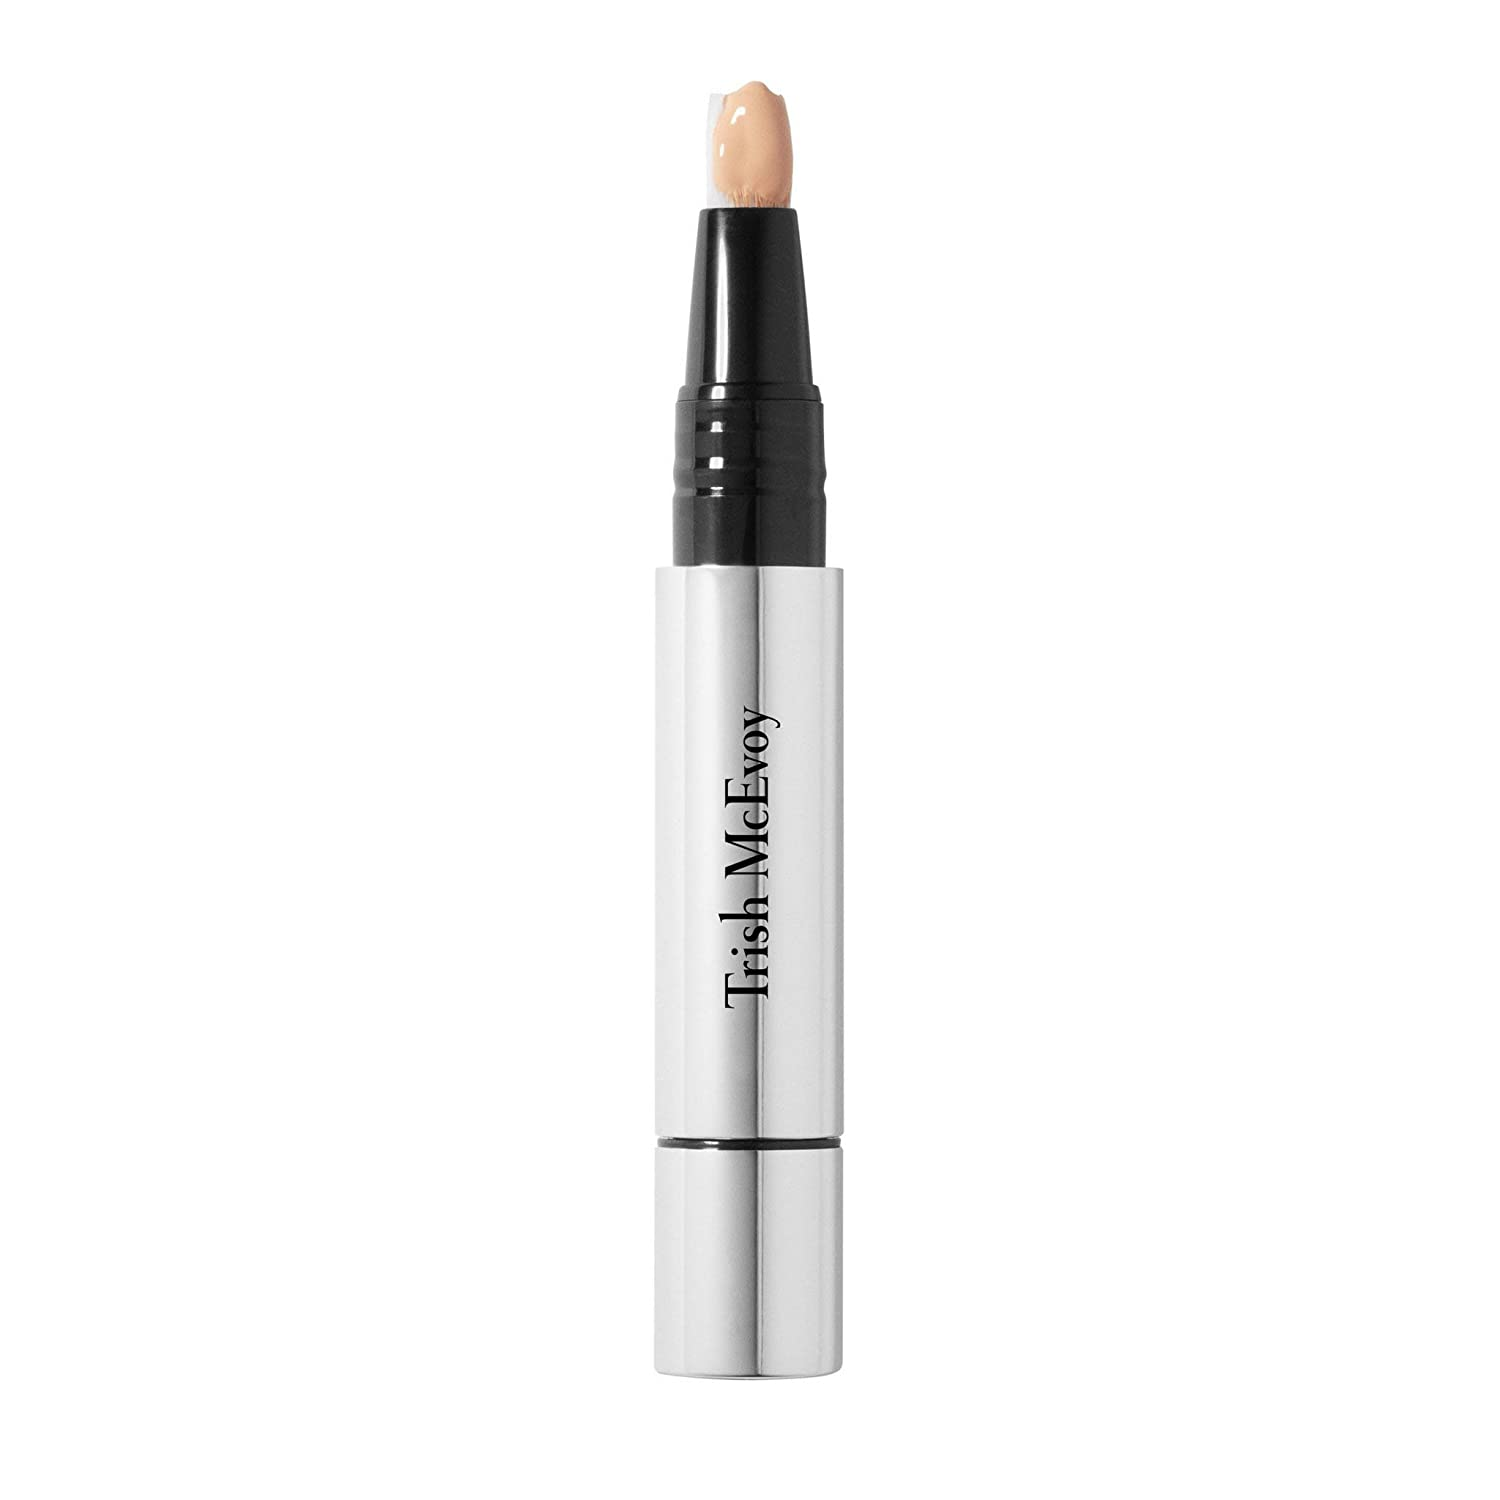 Trish McEvoy Correct & Brighten Highlighter - Shade 1.5 (0.12oz) 3.8ml by Trish McEvoy